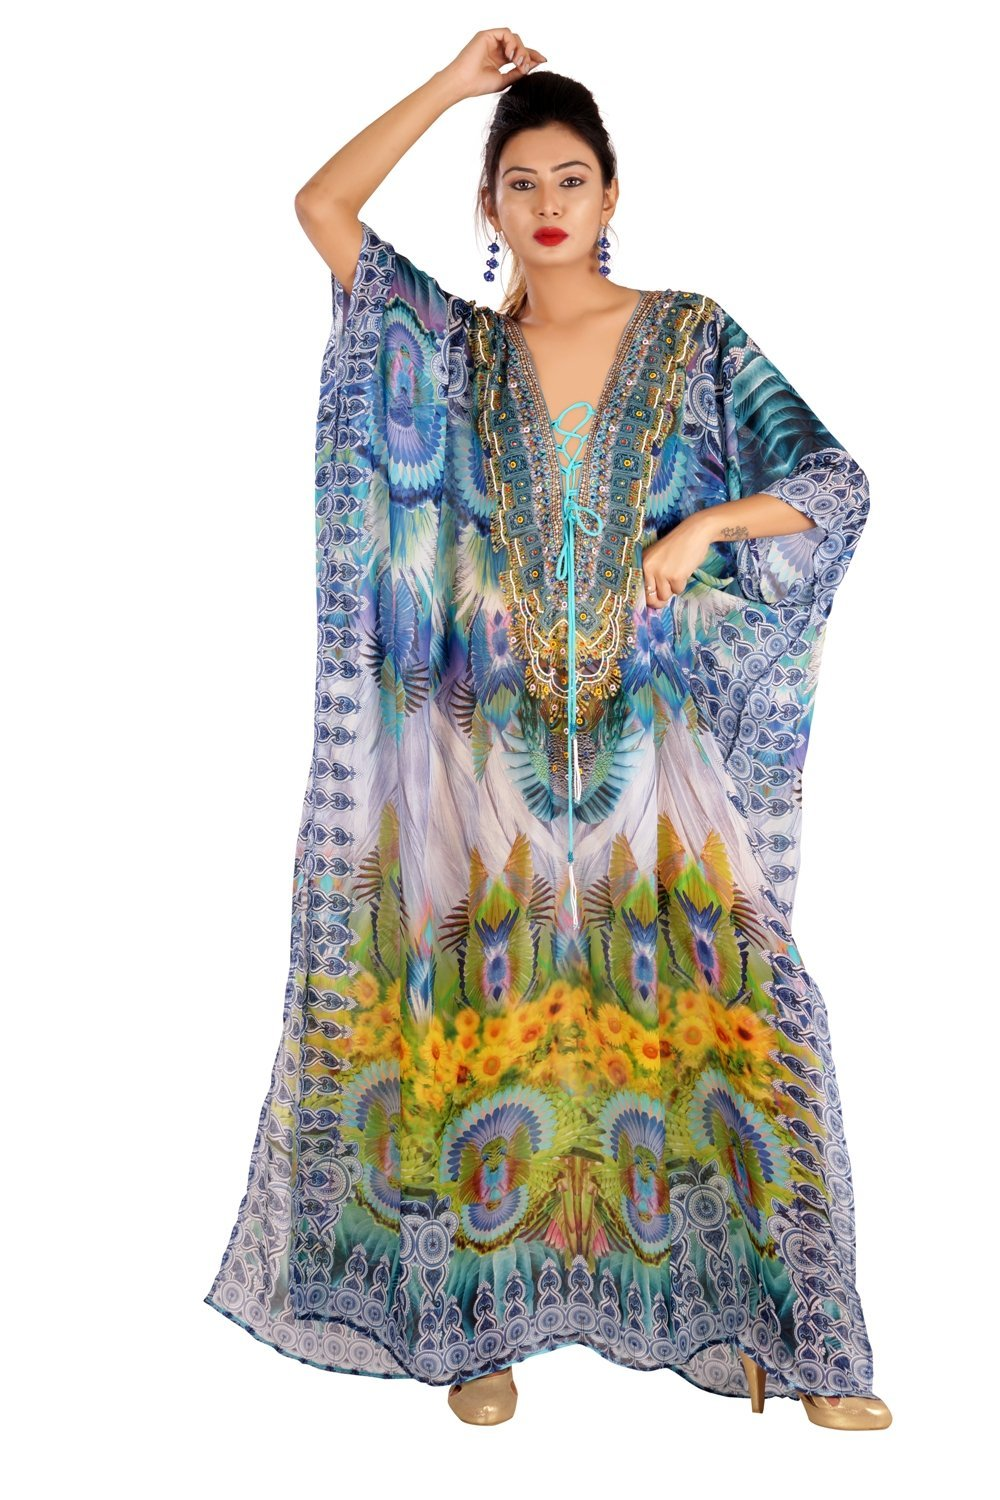 New 100% silk kaftan swaroski beads digital printed lace up full length caftan silk 283